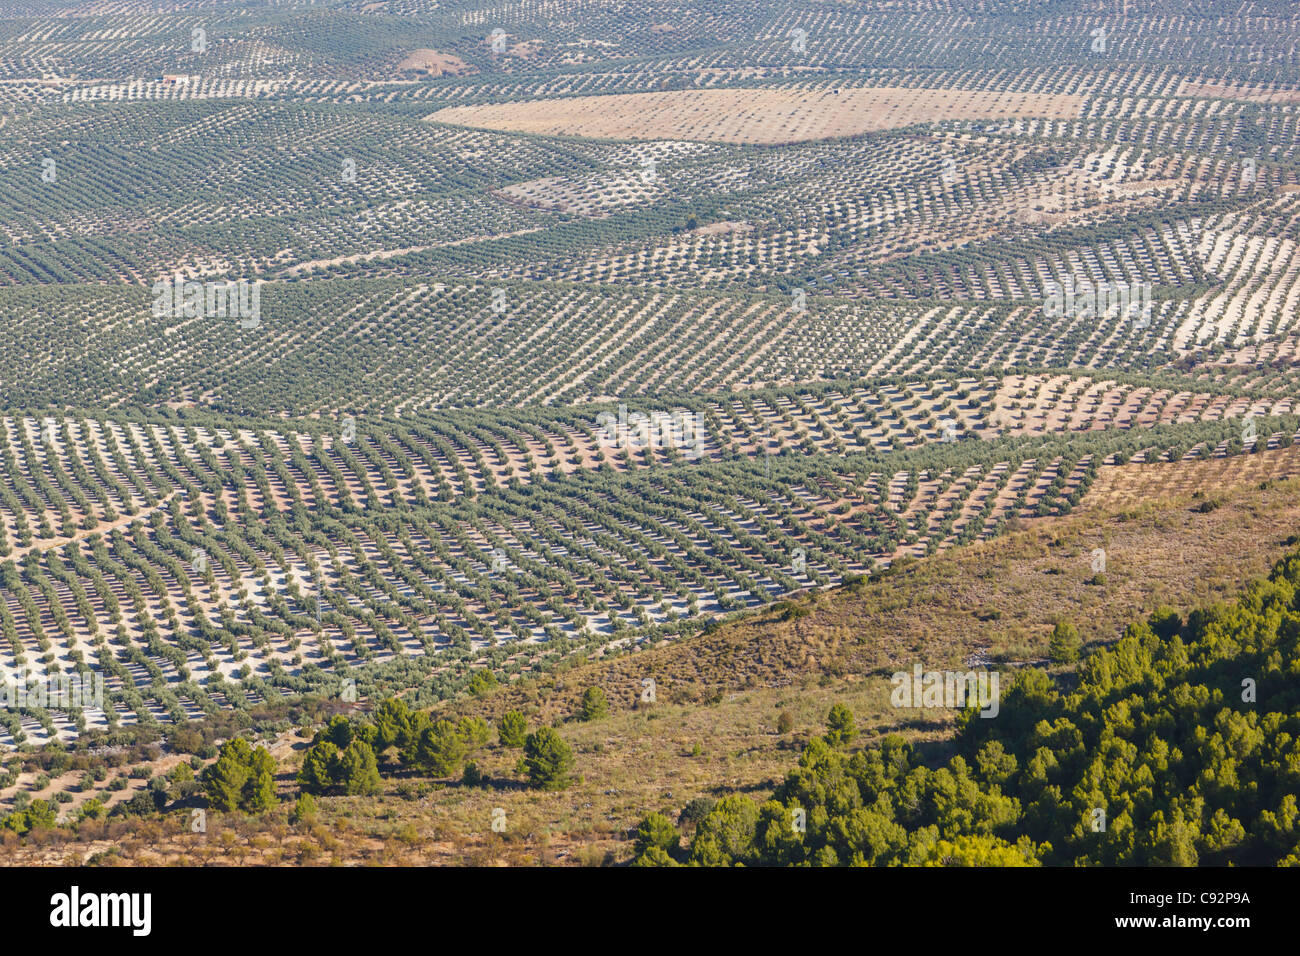 Olive groves near Mancha Real, Jaen Province, Spain. Stock Photo